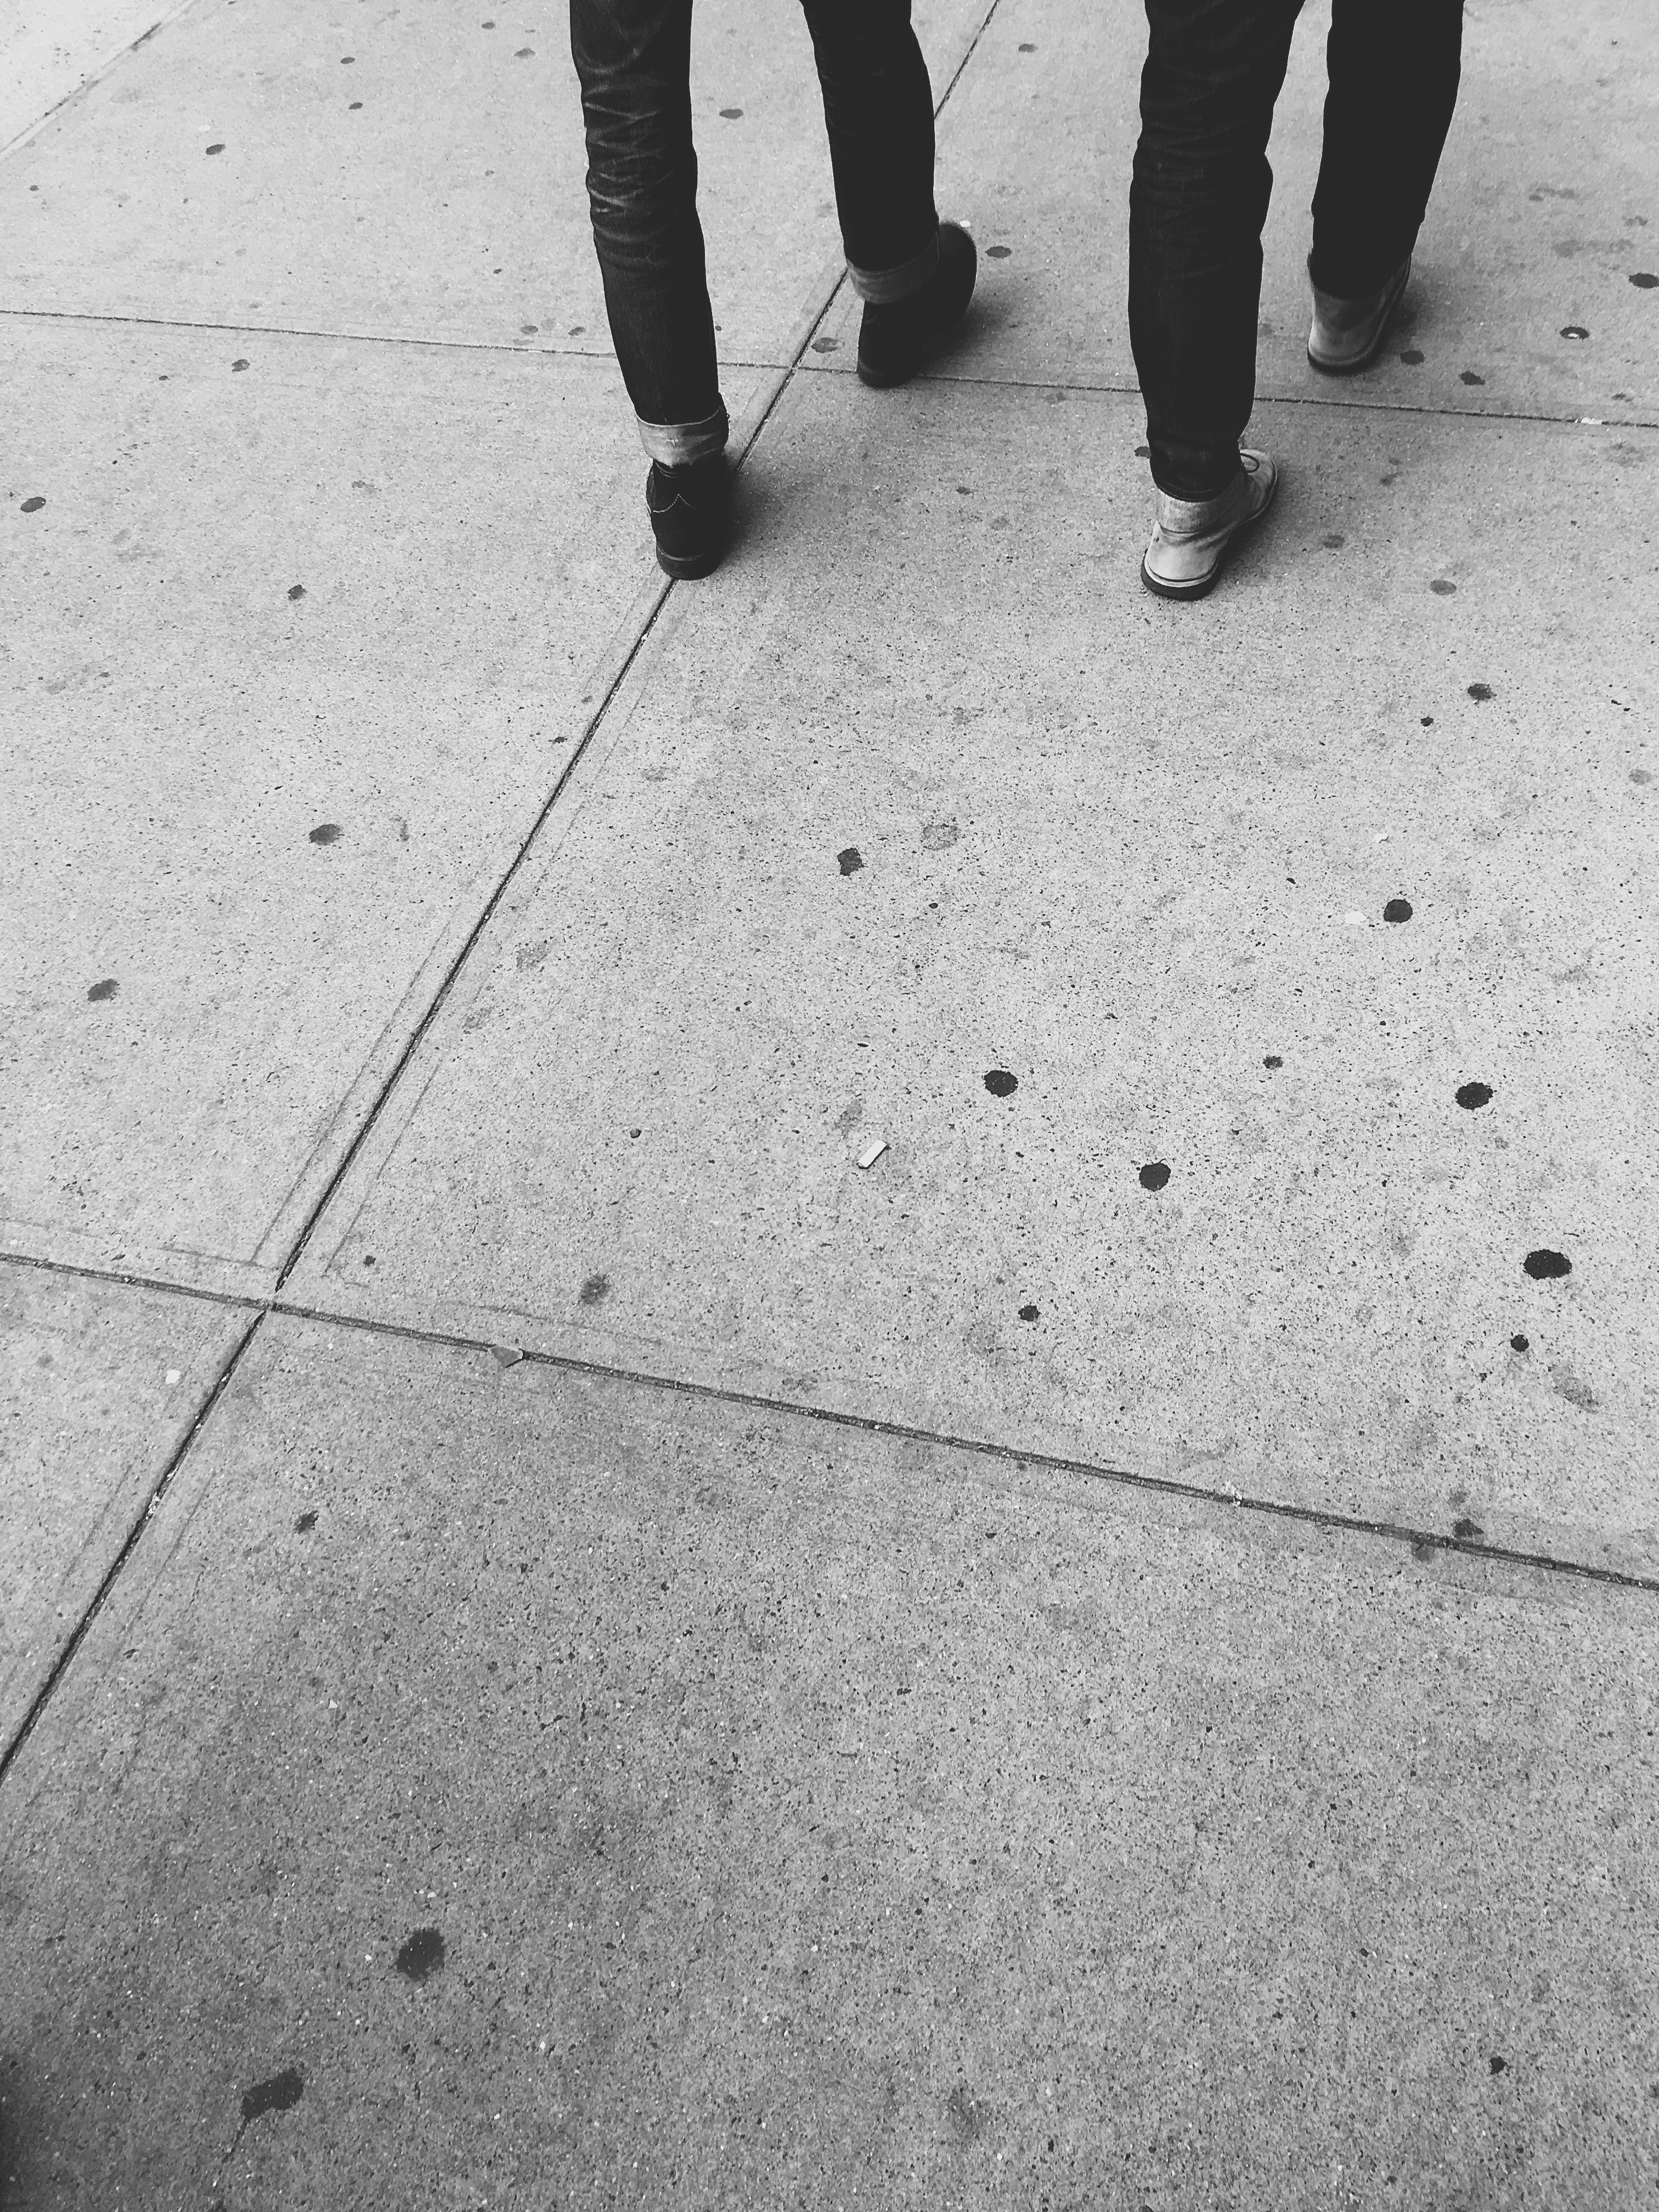 two persons walking on concrete floor